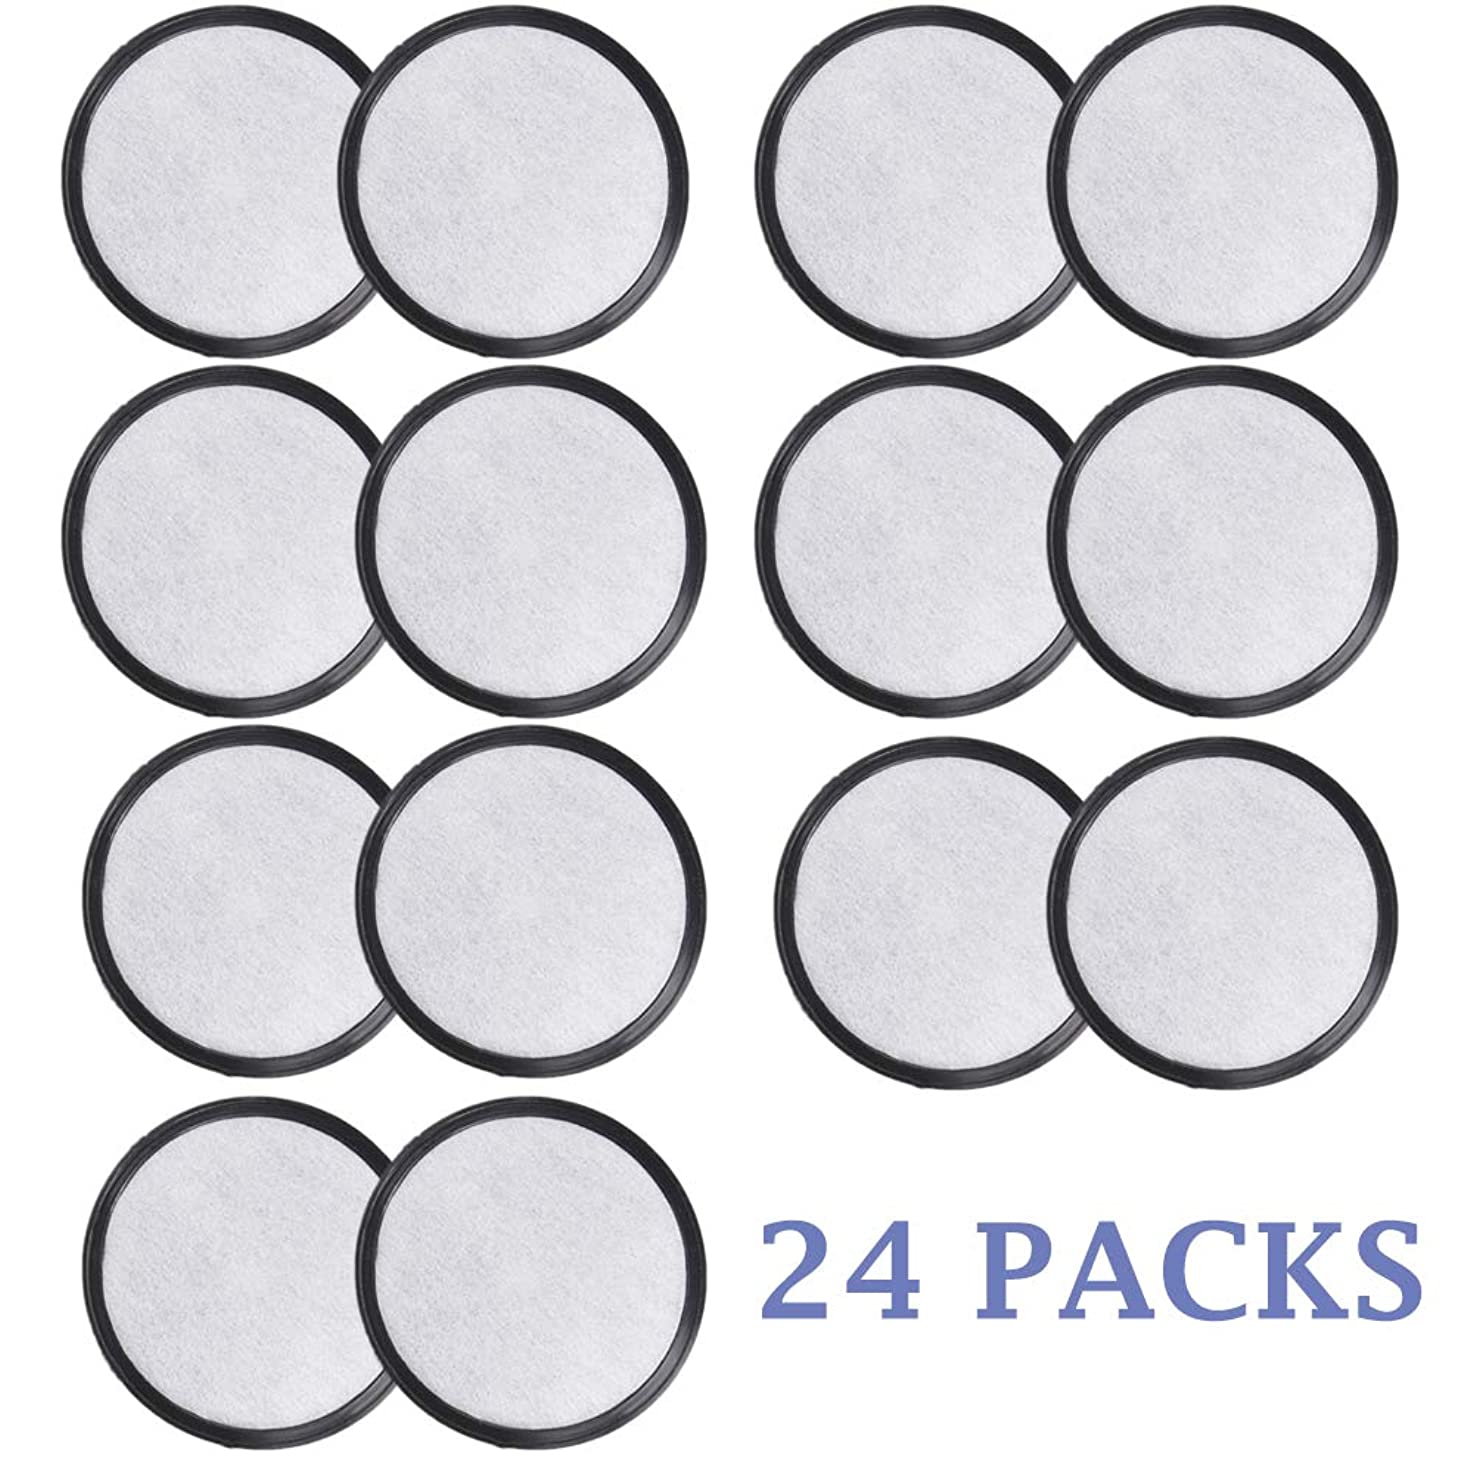 HiWater 24 Packs Compatible Replacement for Mr Coffee Charcoal Water Filters Discs compatible for Coffee Brewers Purifies Water Over 97% From Chlorine, Calcium, Odors & Other Impurities